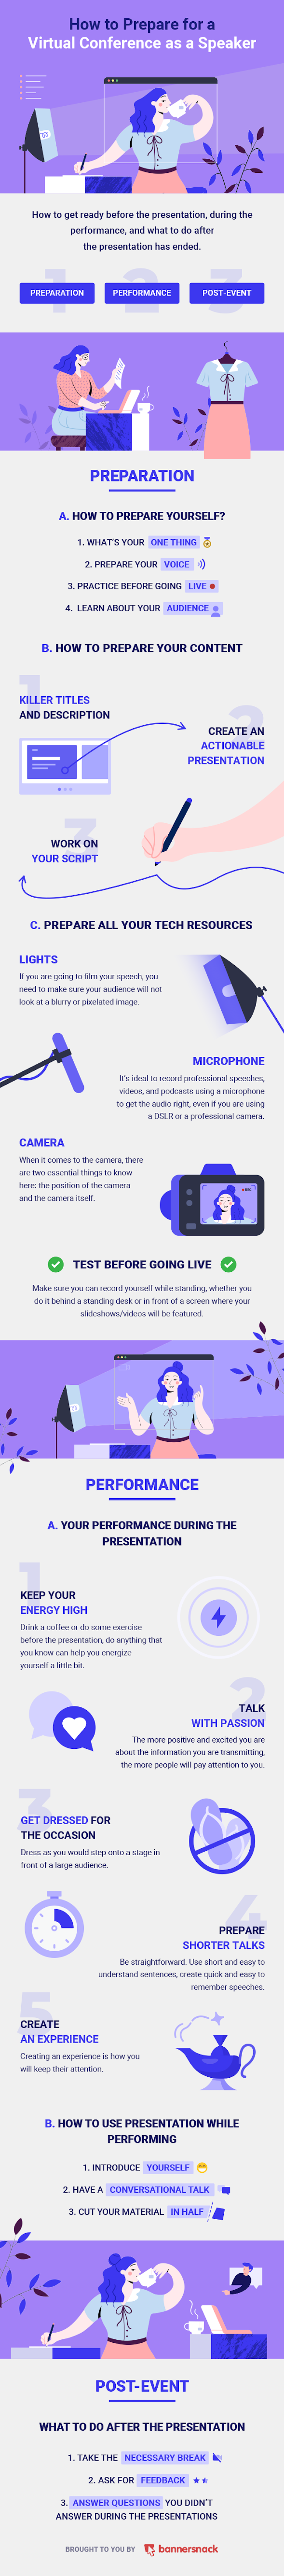 How to Host a Virtual Conference Successfully - Infographic